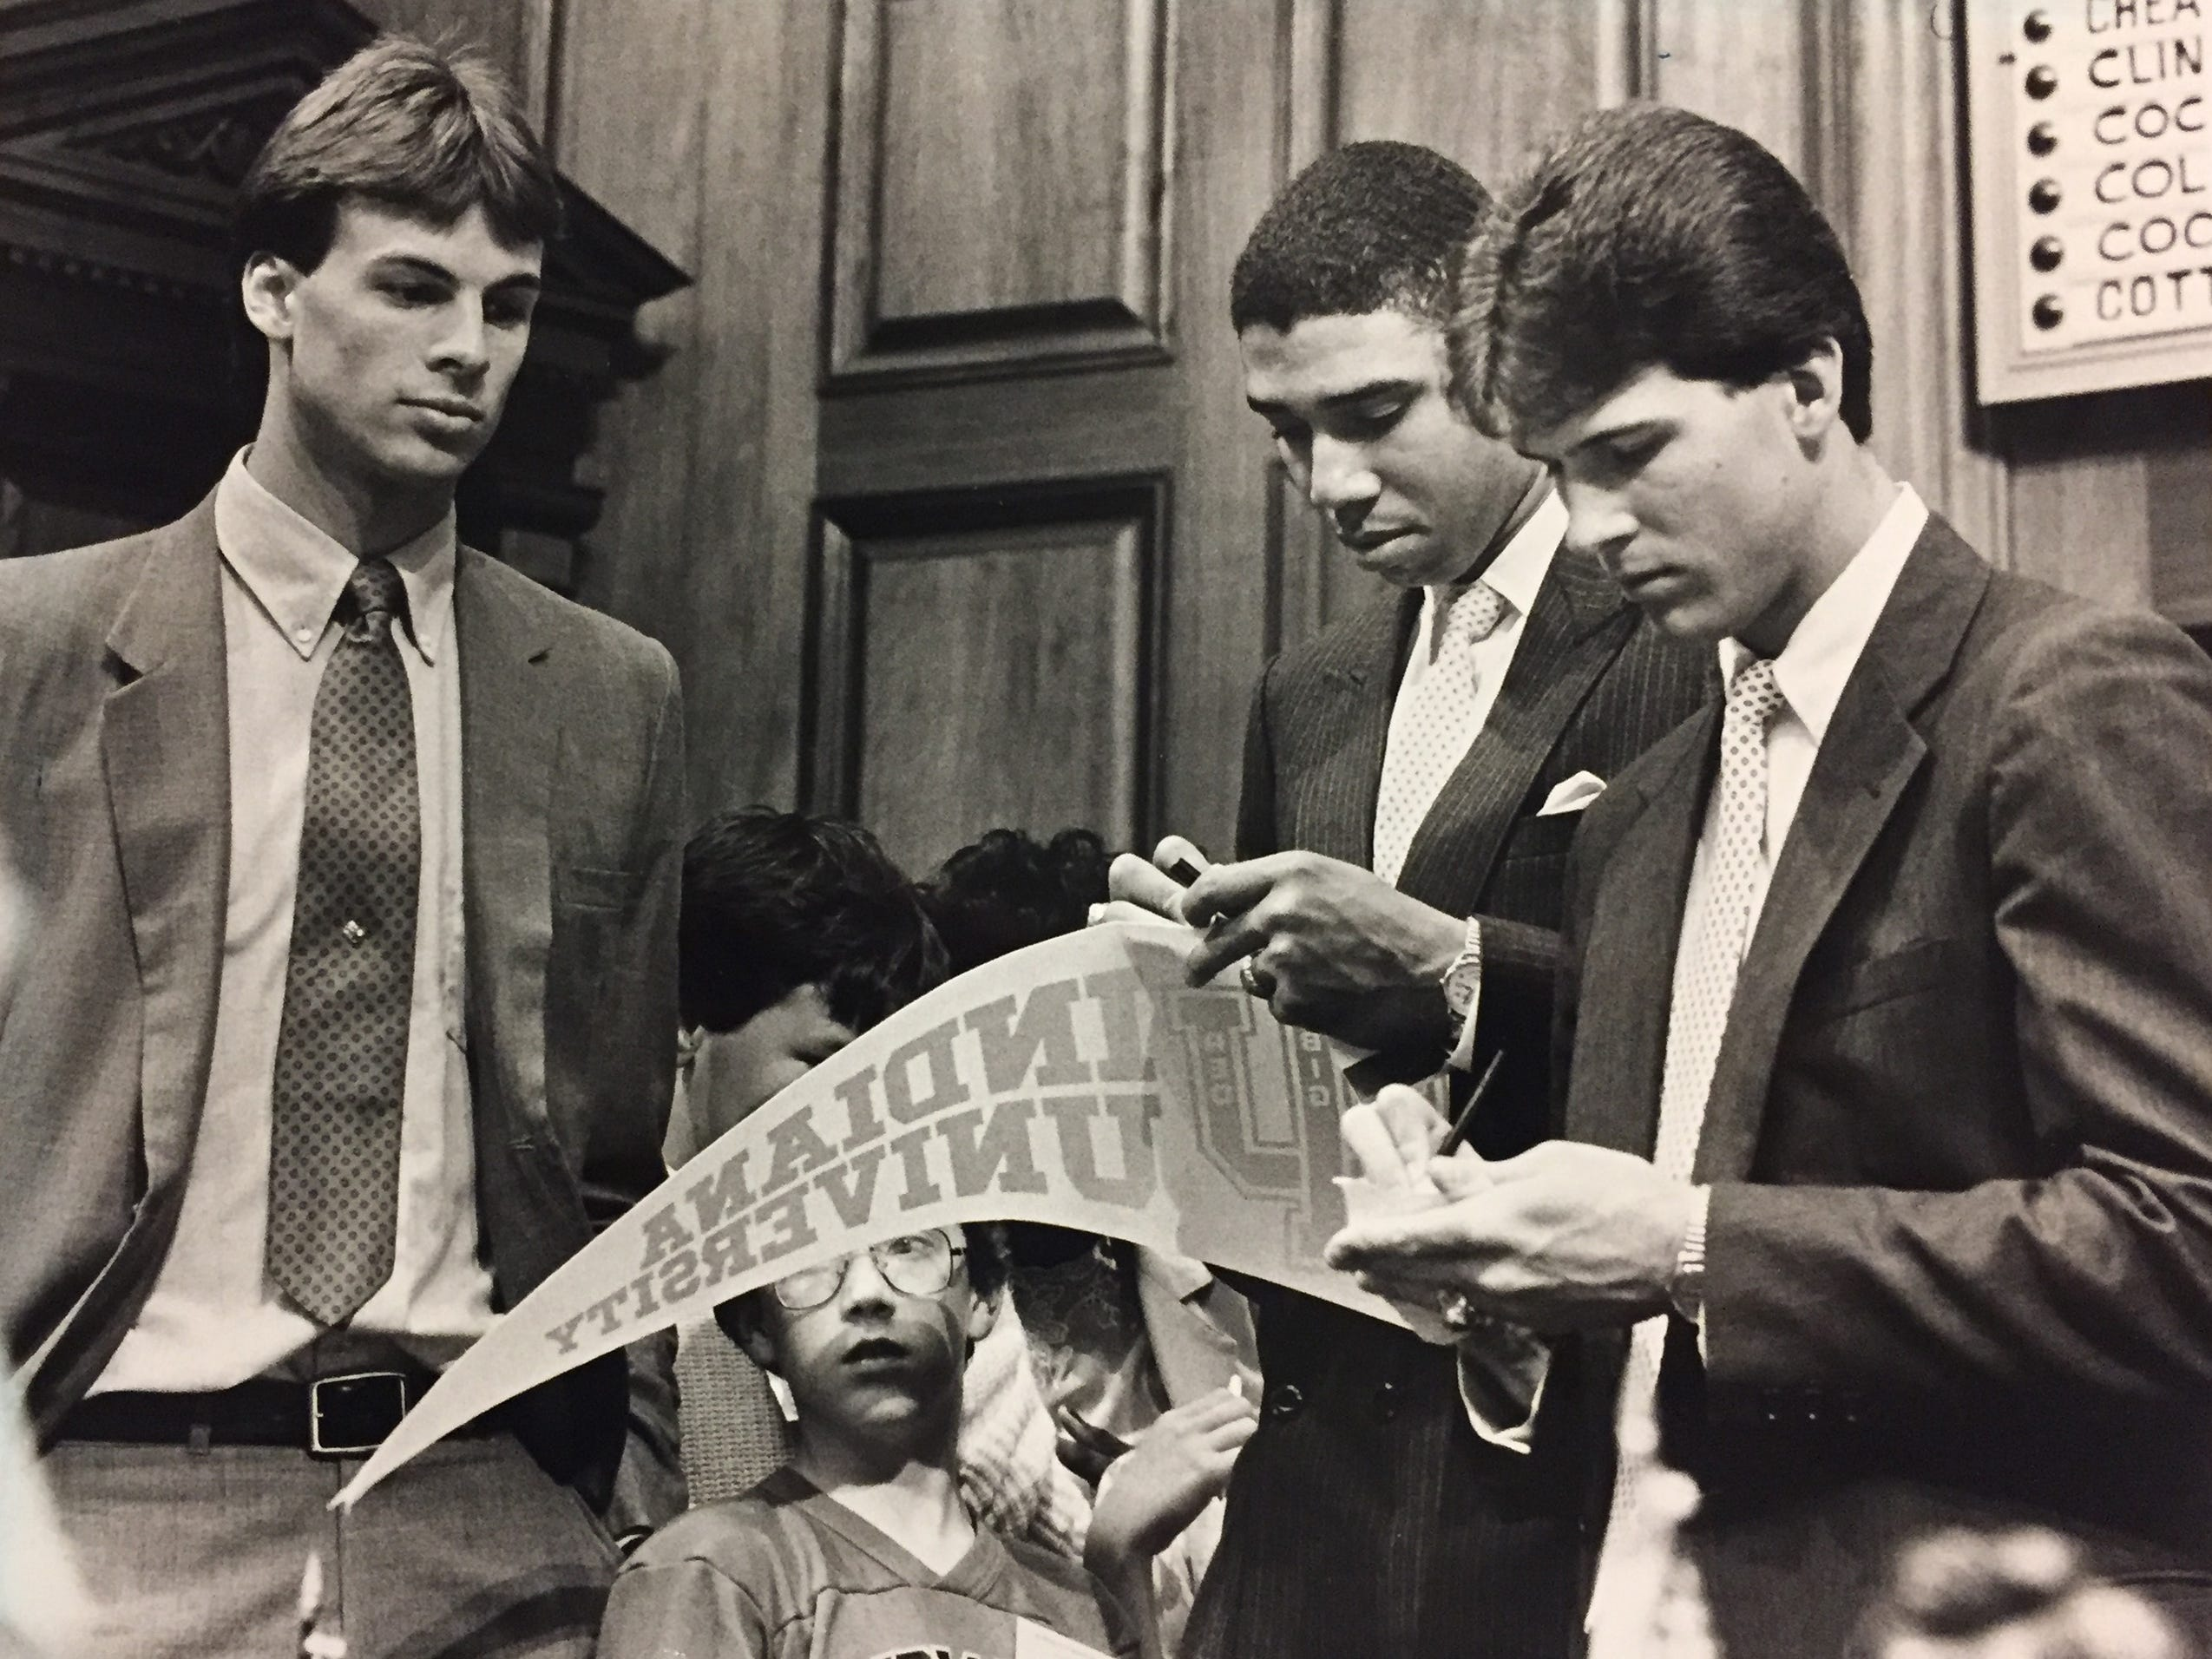 Todd Meier (left), Daryl Thomas and Steve Alford (right) sign pennant for Todd Dovrak, 9, during House visit in April 1987.